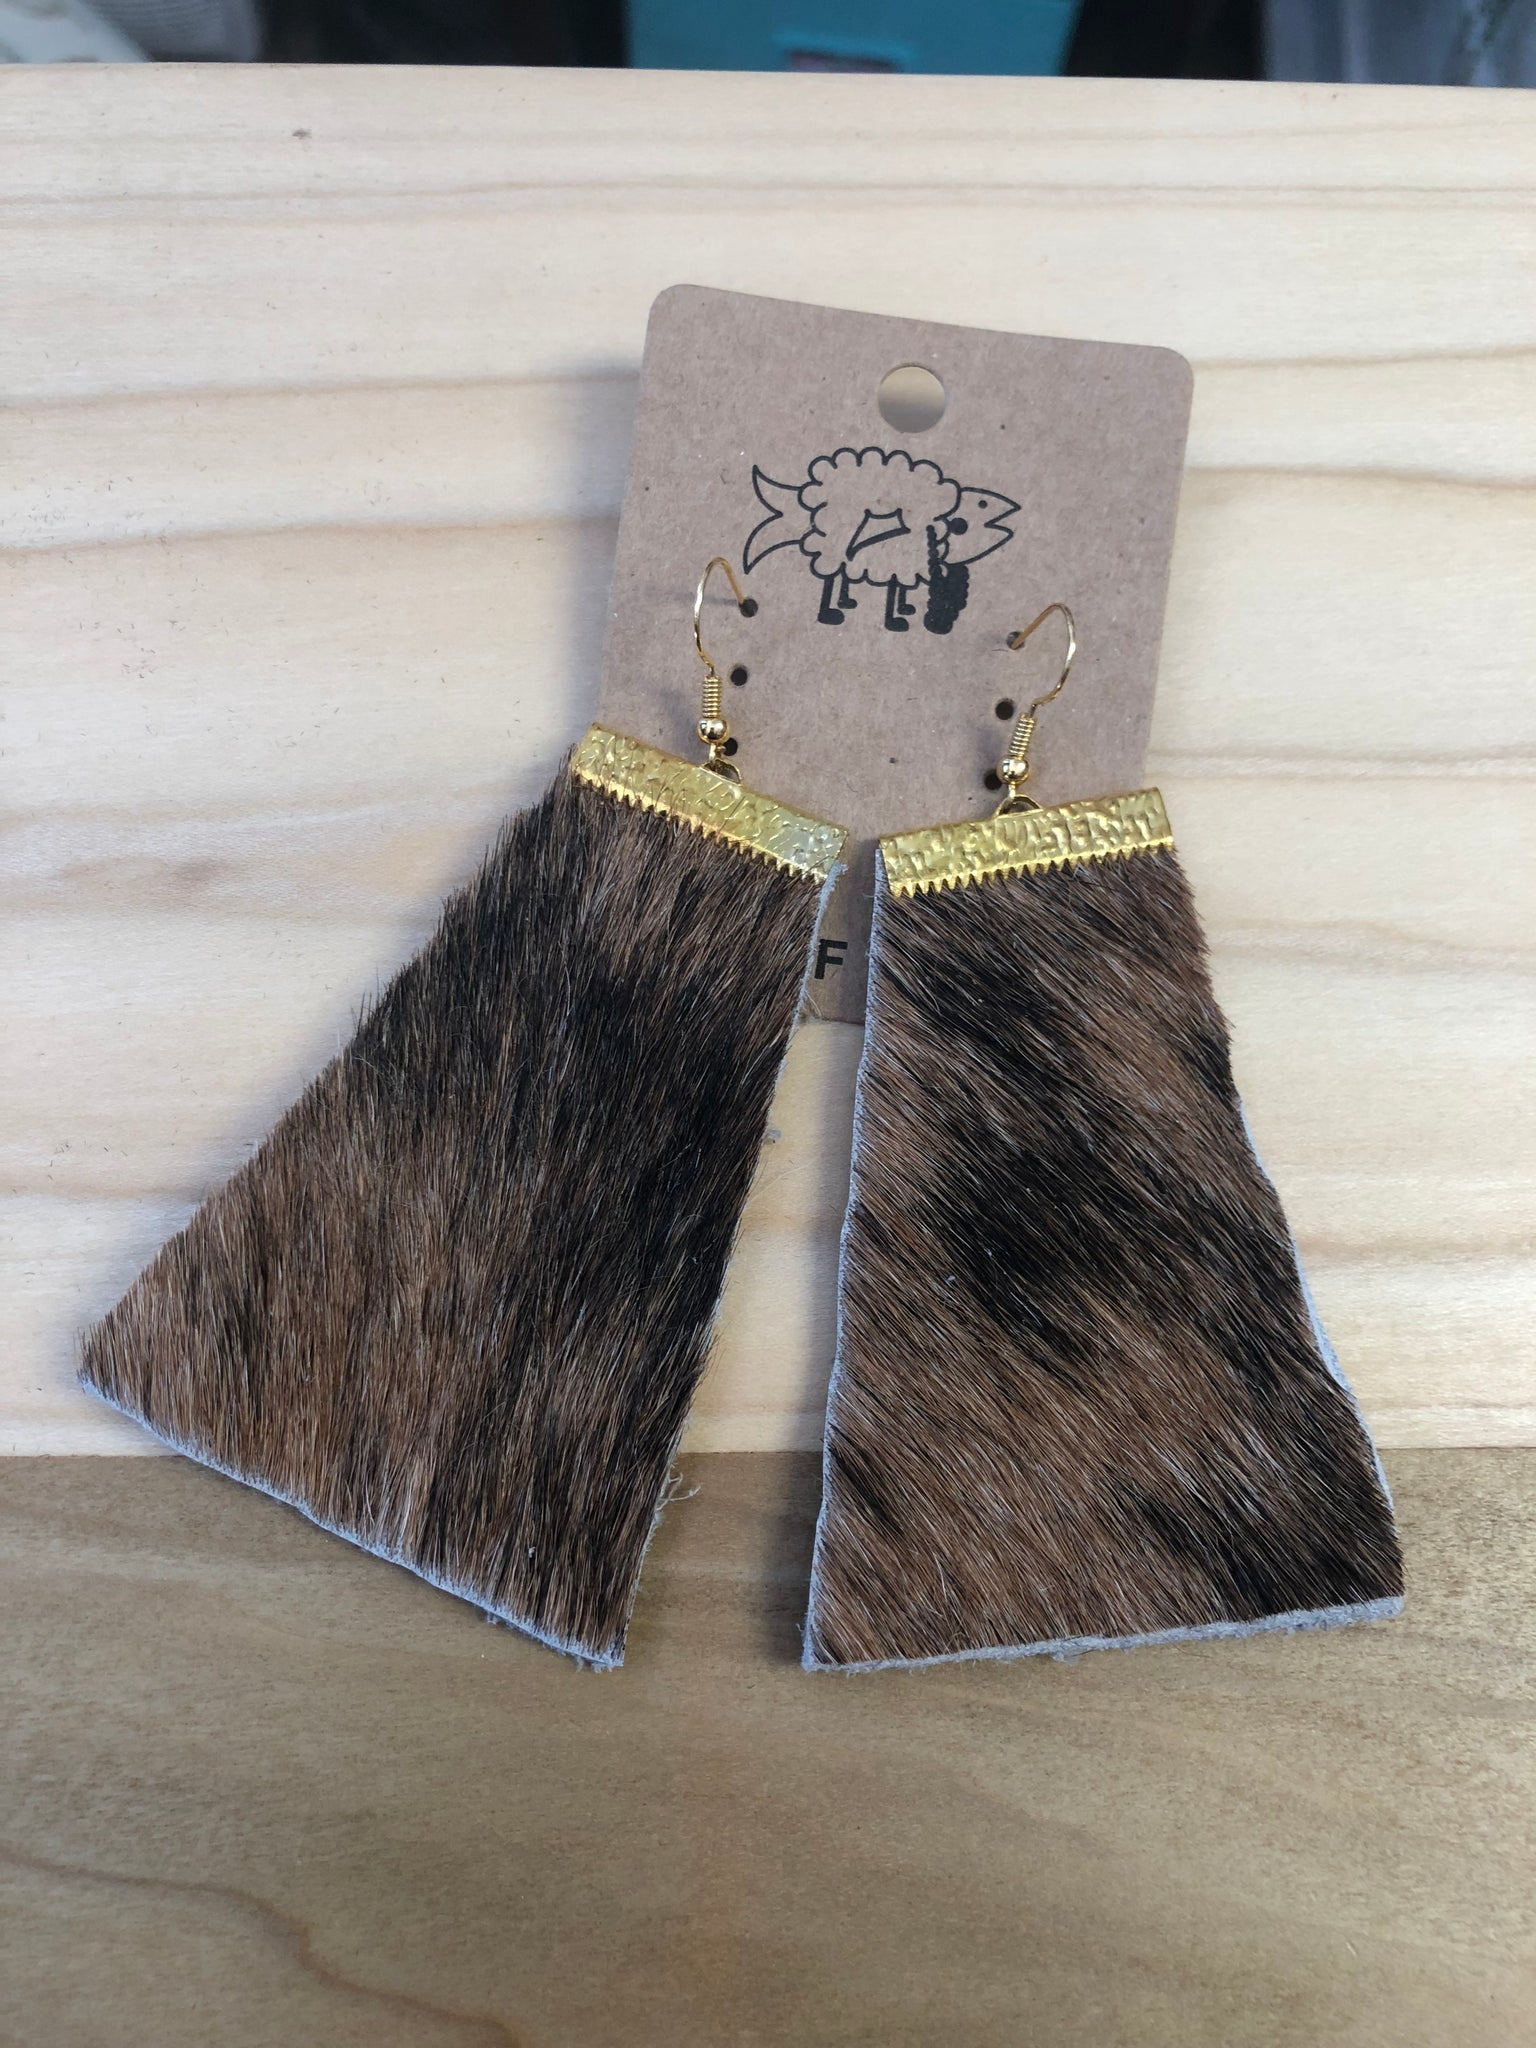 Fur/Leather earrings